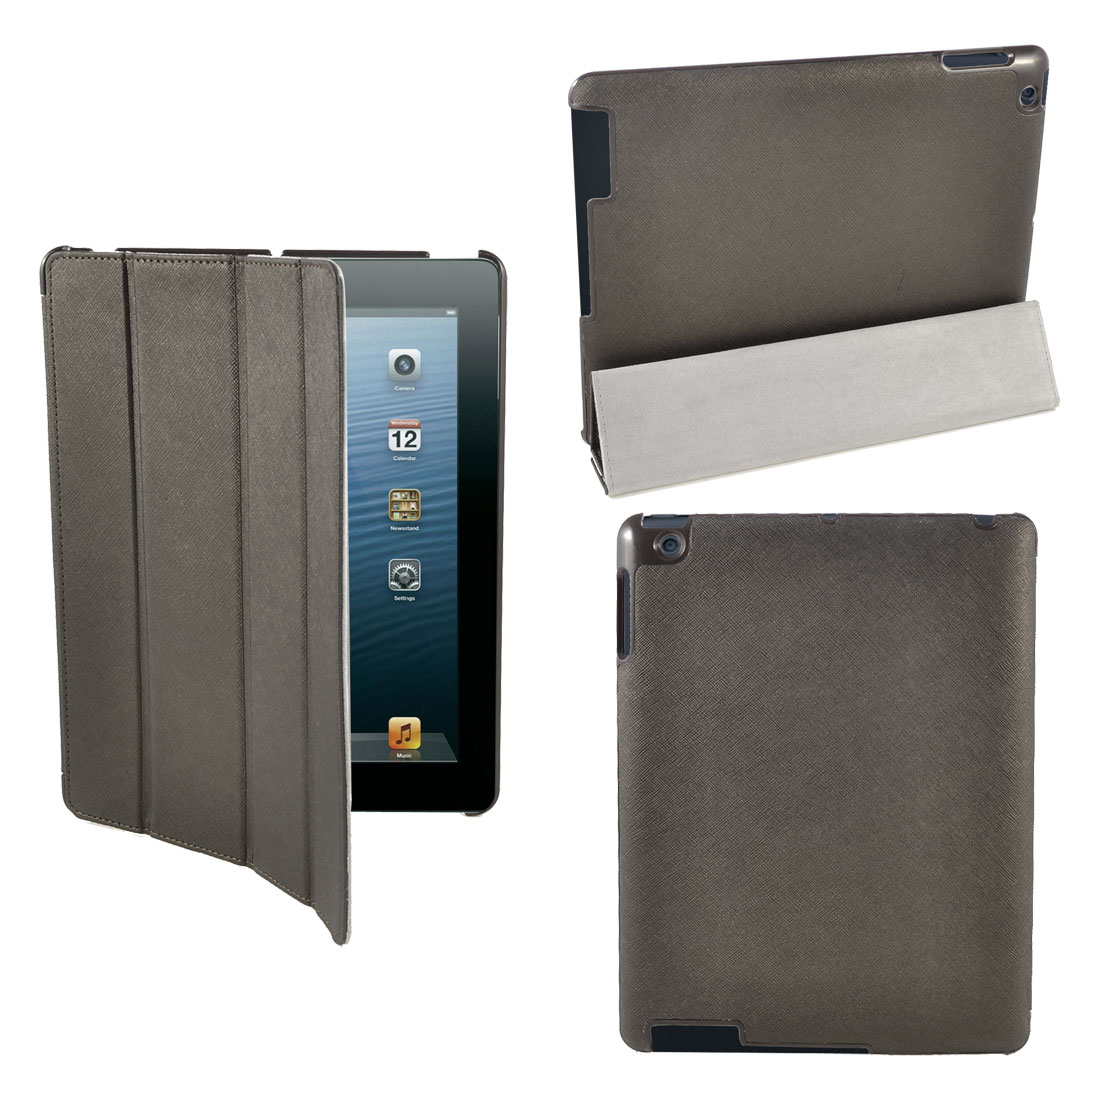 Brown UP Leather Wake Up Sleep Stand Case Smart Cover for iPad 2 2nd